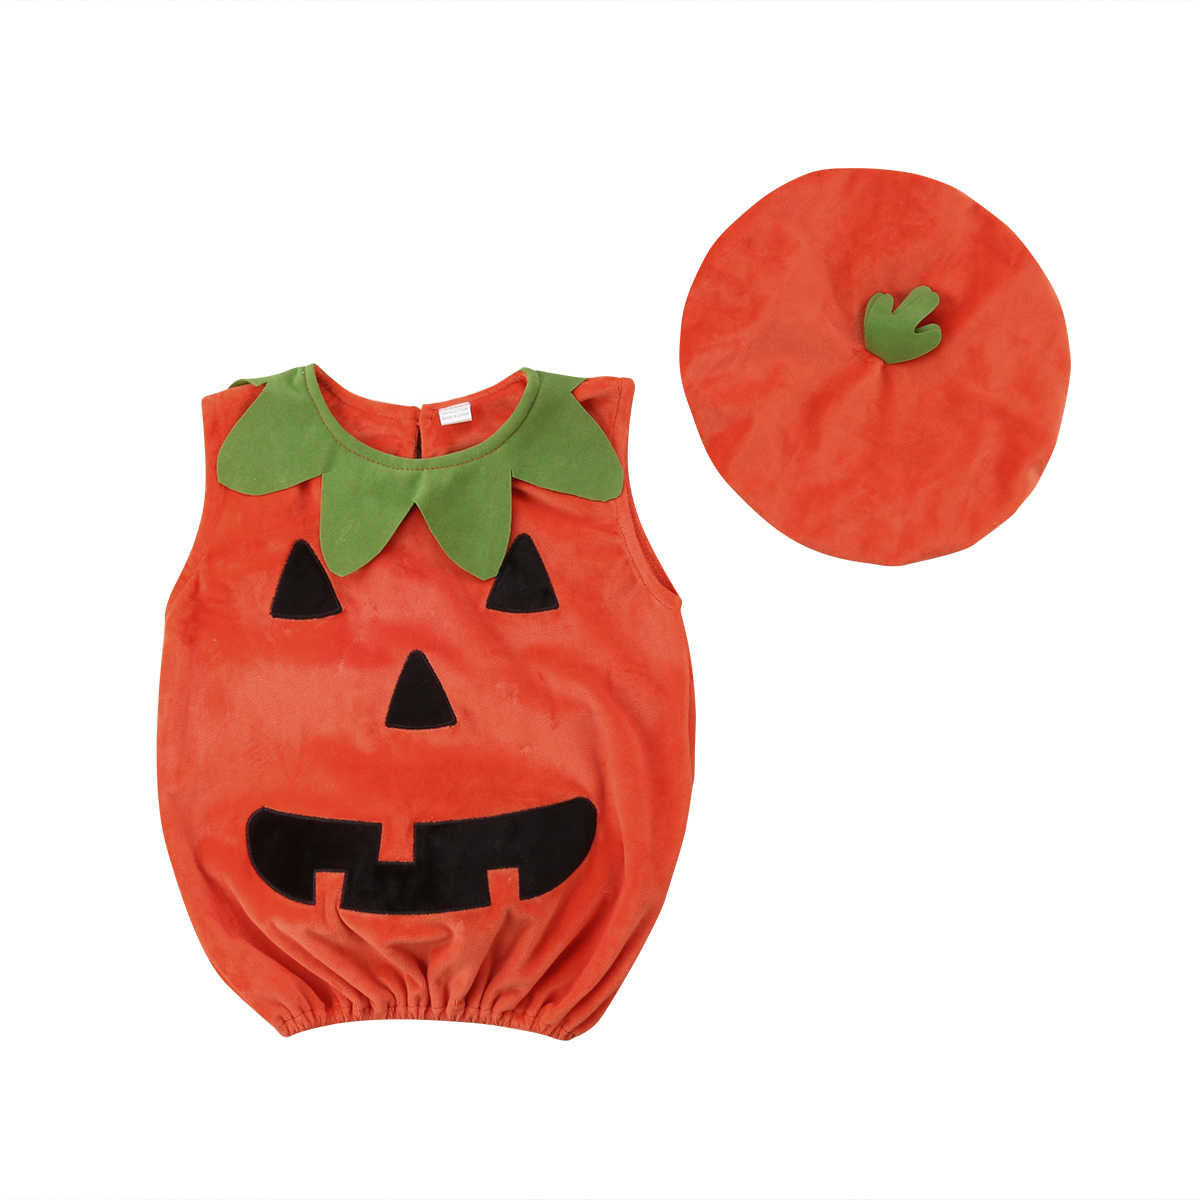 Adorable Unisex Kids Toddler Newborn Baby Girl Boy Halloween Costume Pumpkin Romper Cosplay Outfits with Hat new